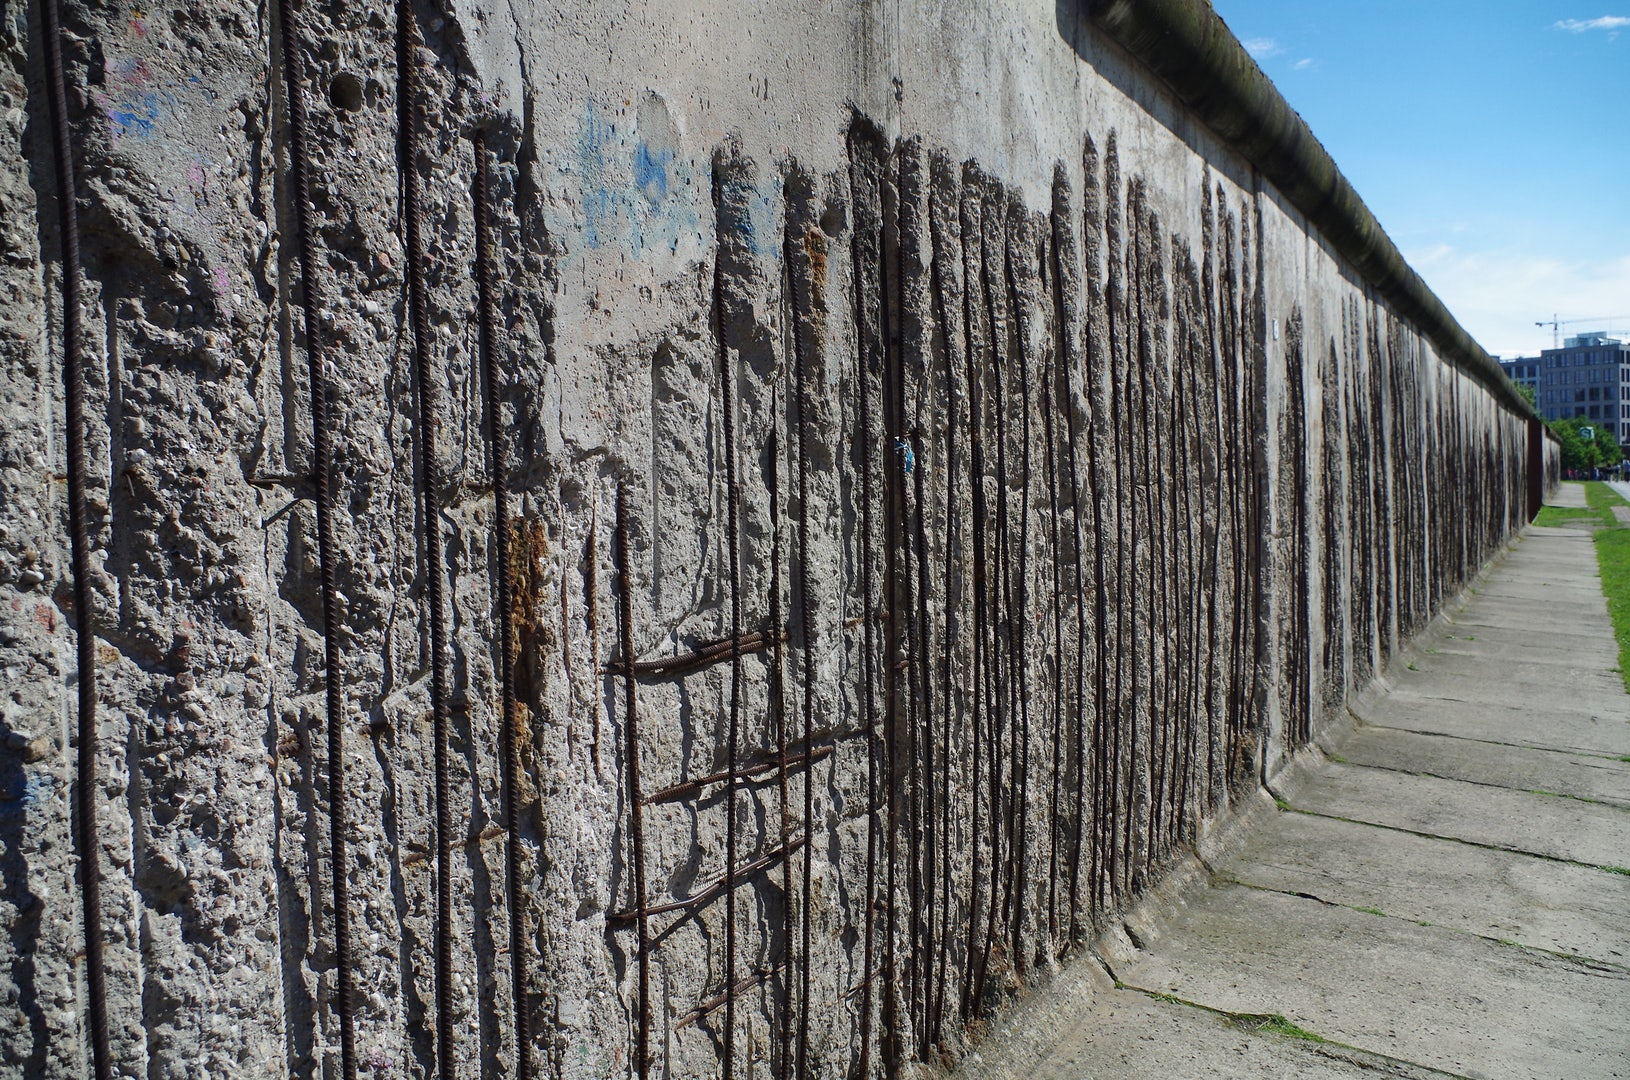 Berlin wall memorial at the Bernauerstrasse where you still see a piece of the wall